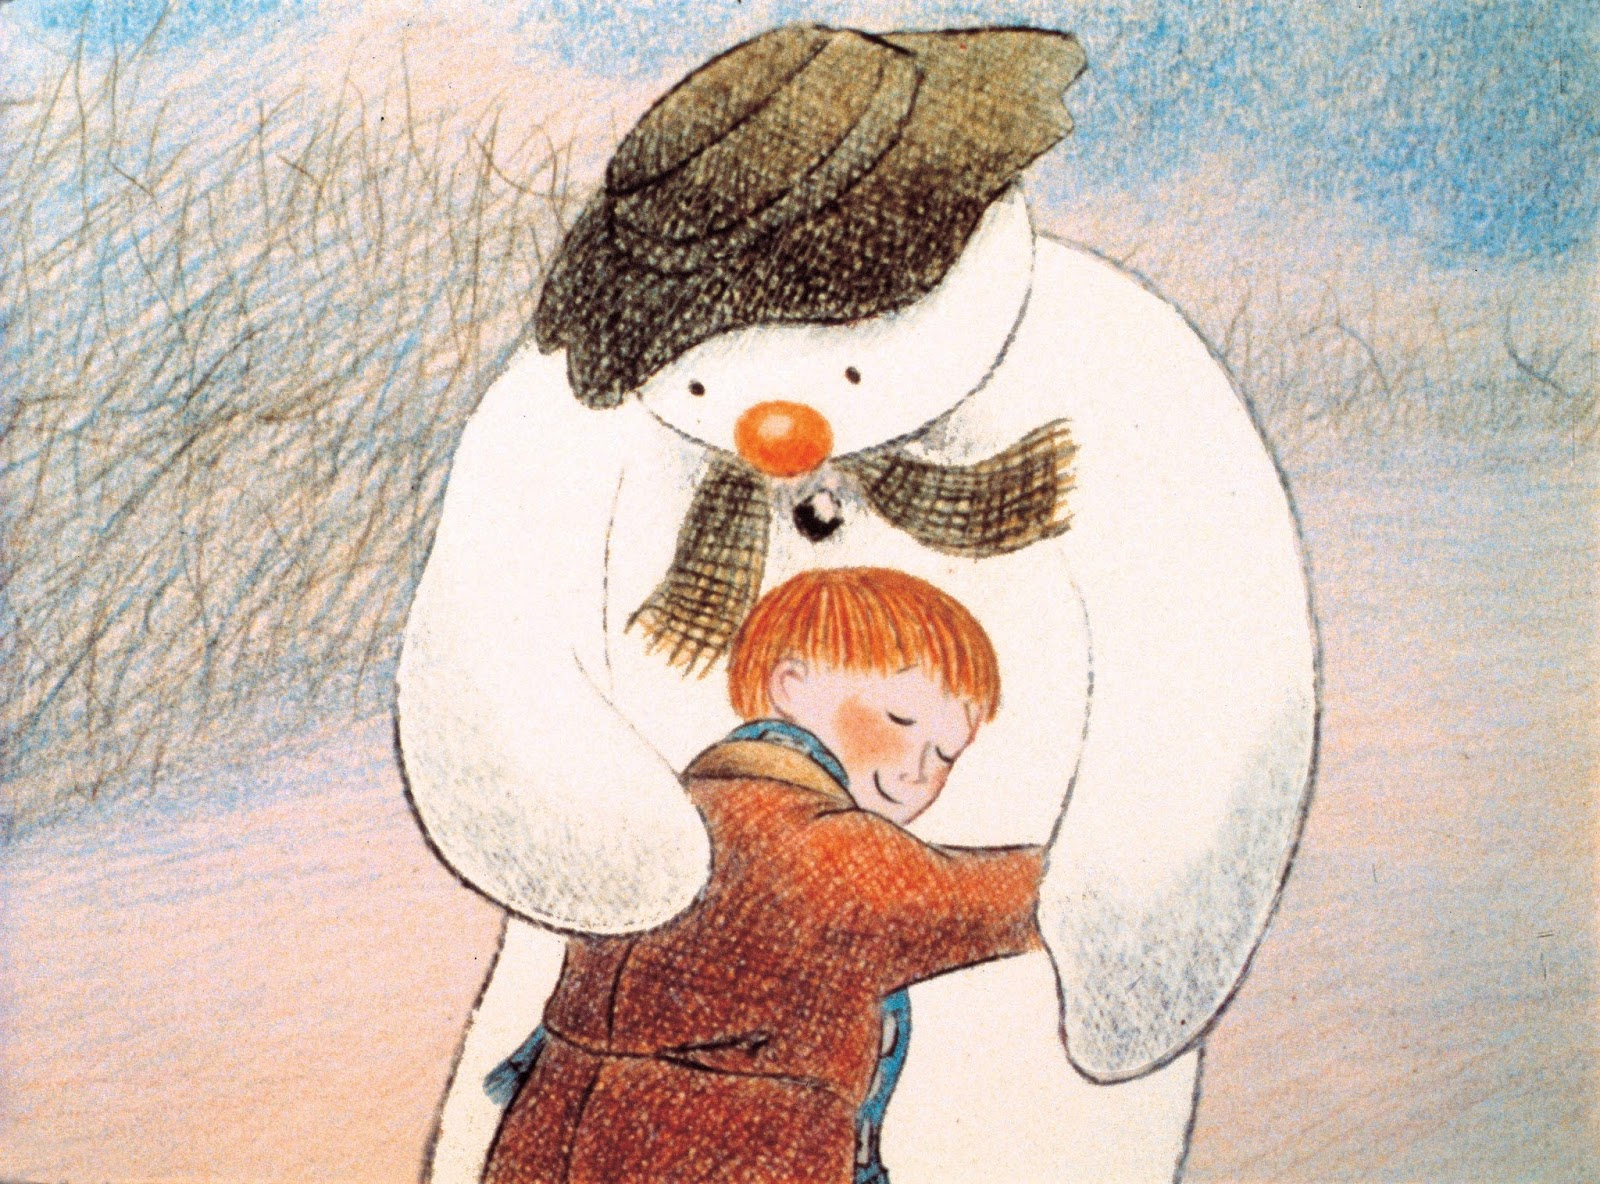 original painting of the snowman hugging the boy